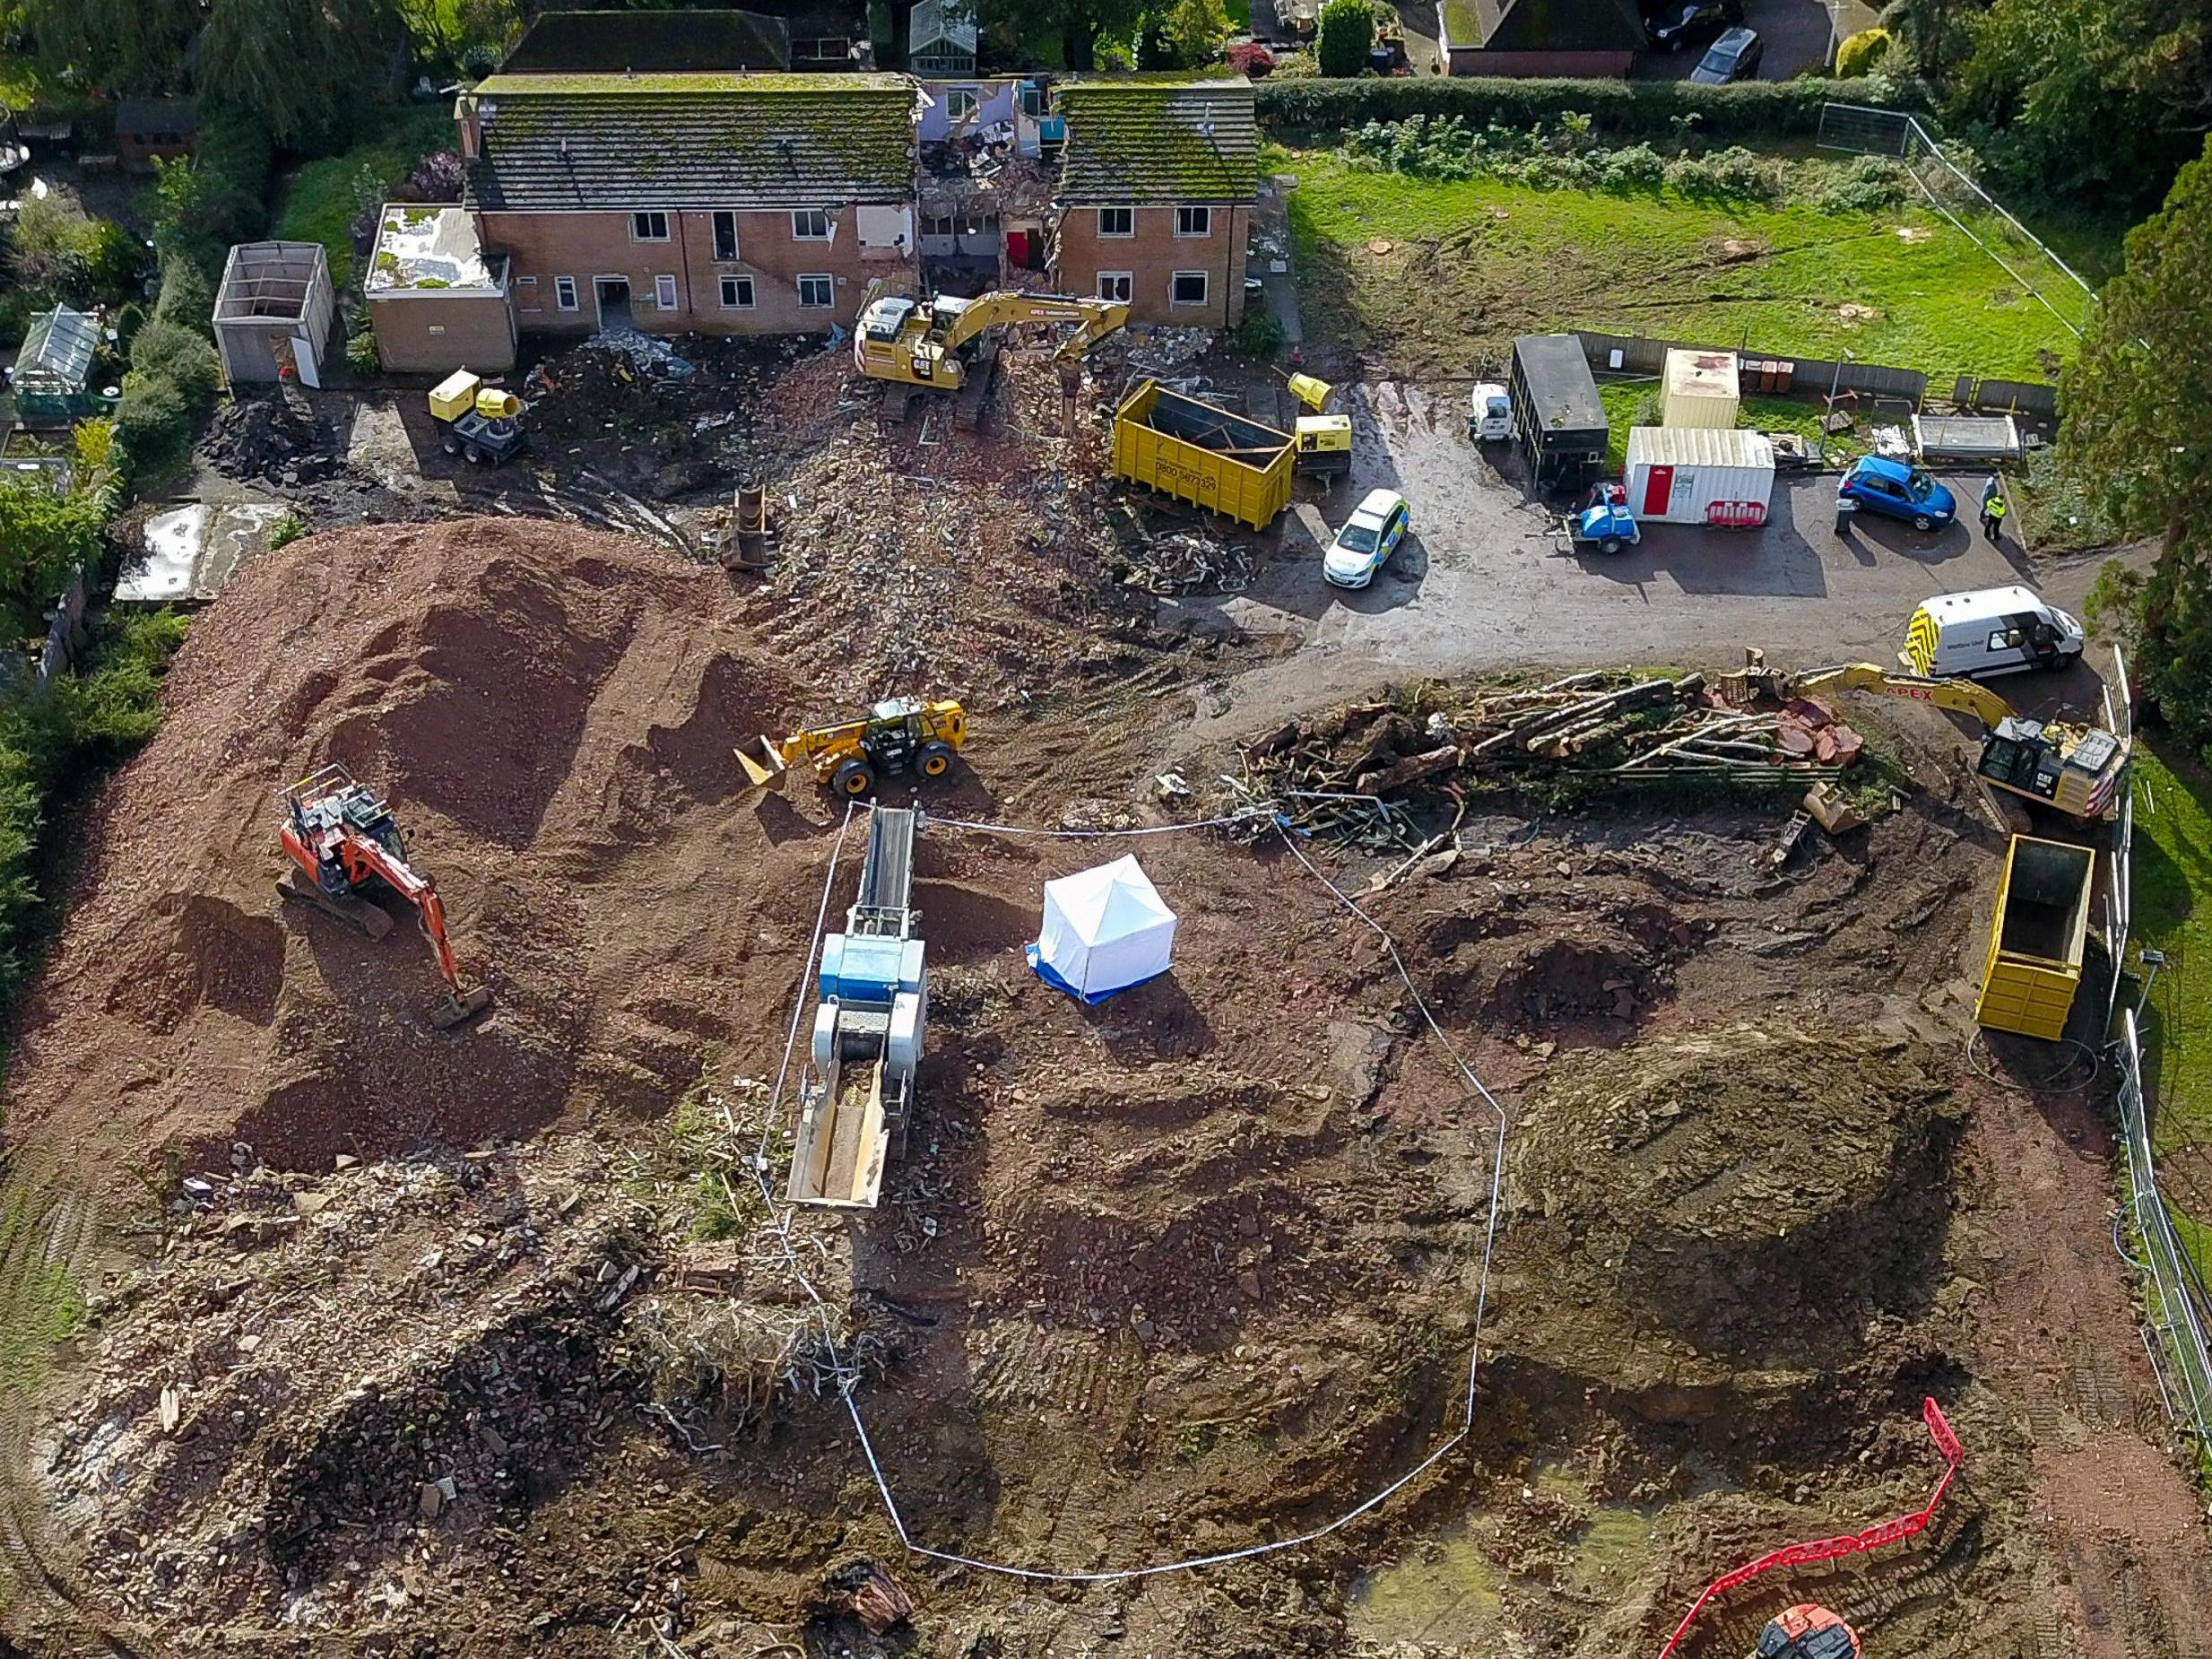 Human bones found on site of former care home in Leicestershire